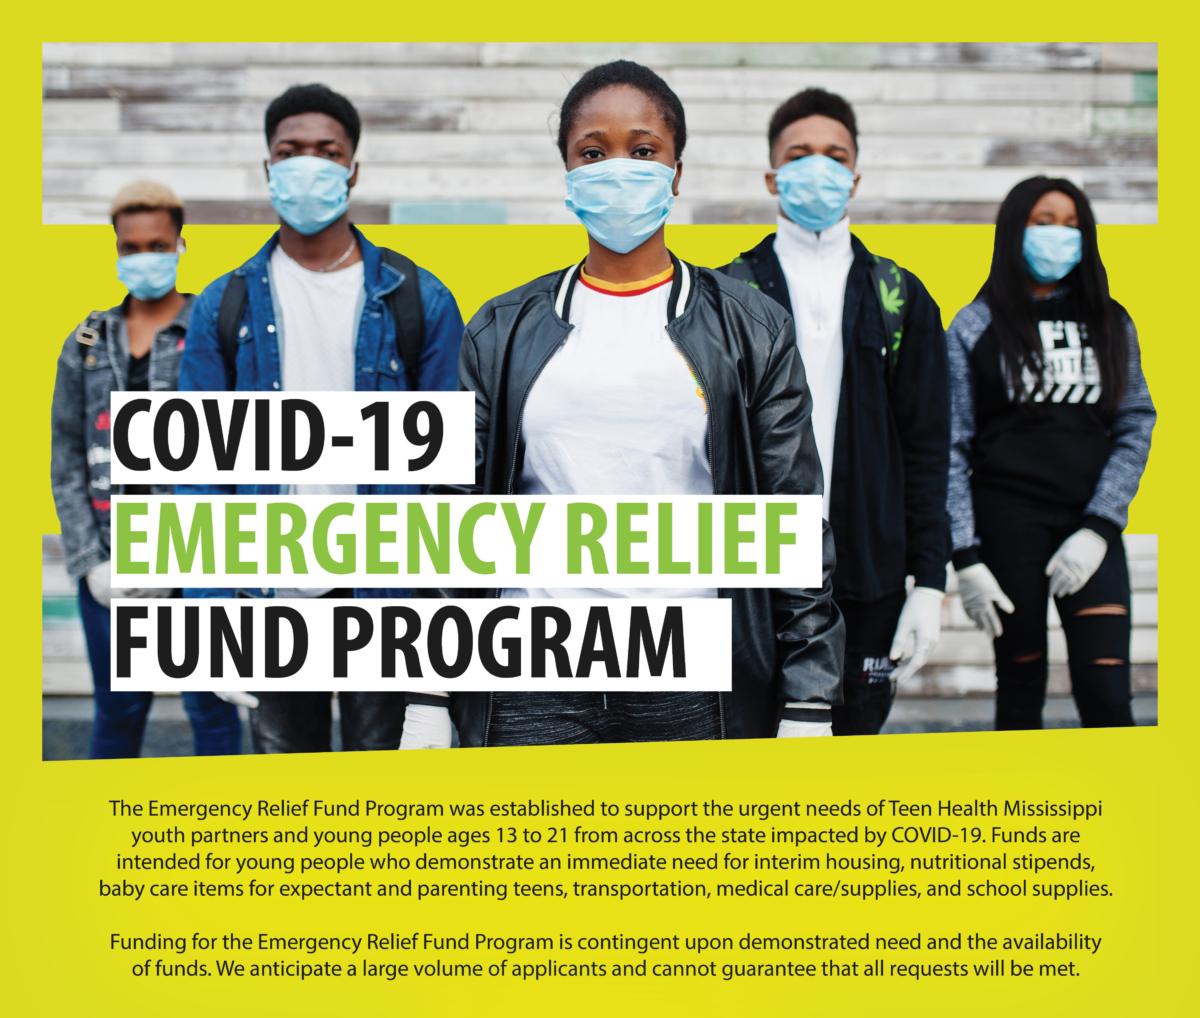 Covid 19 Emergency Relief Fund Awards 150 Youth From Across Mississippi Teen Health Mississippi